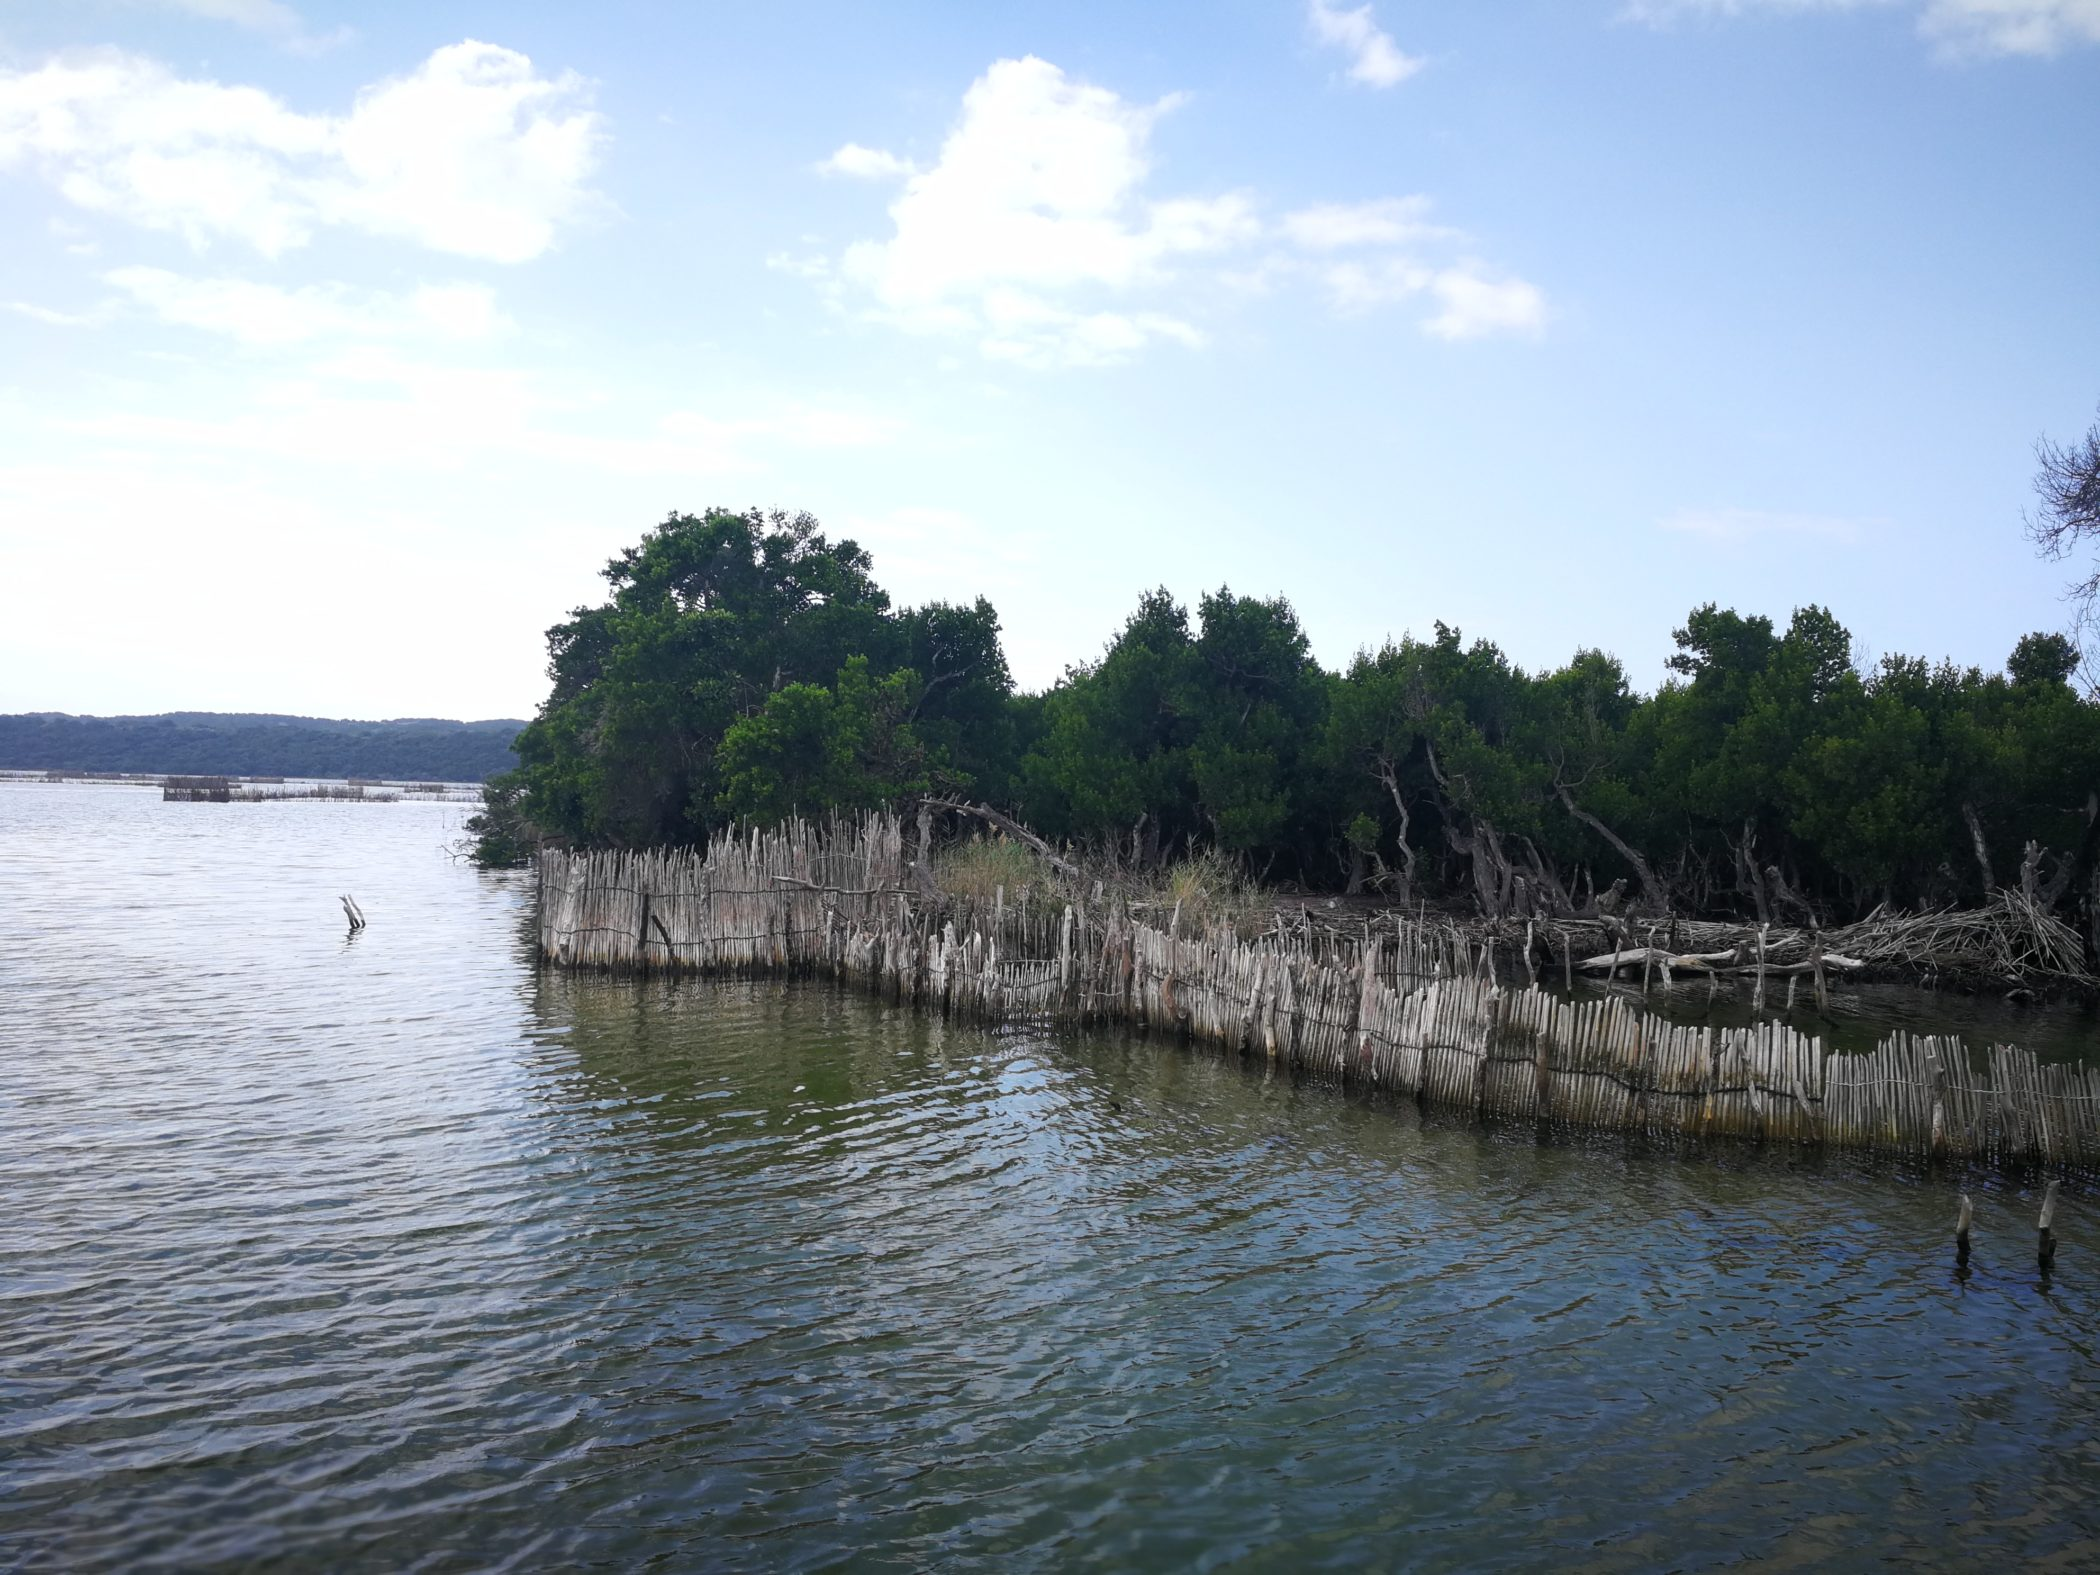 Utshwayelo Kosi Mouth Fish Traps